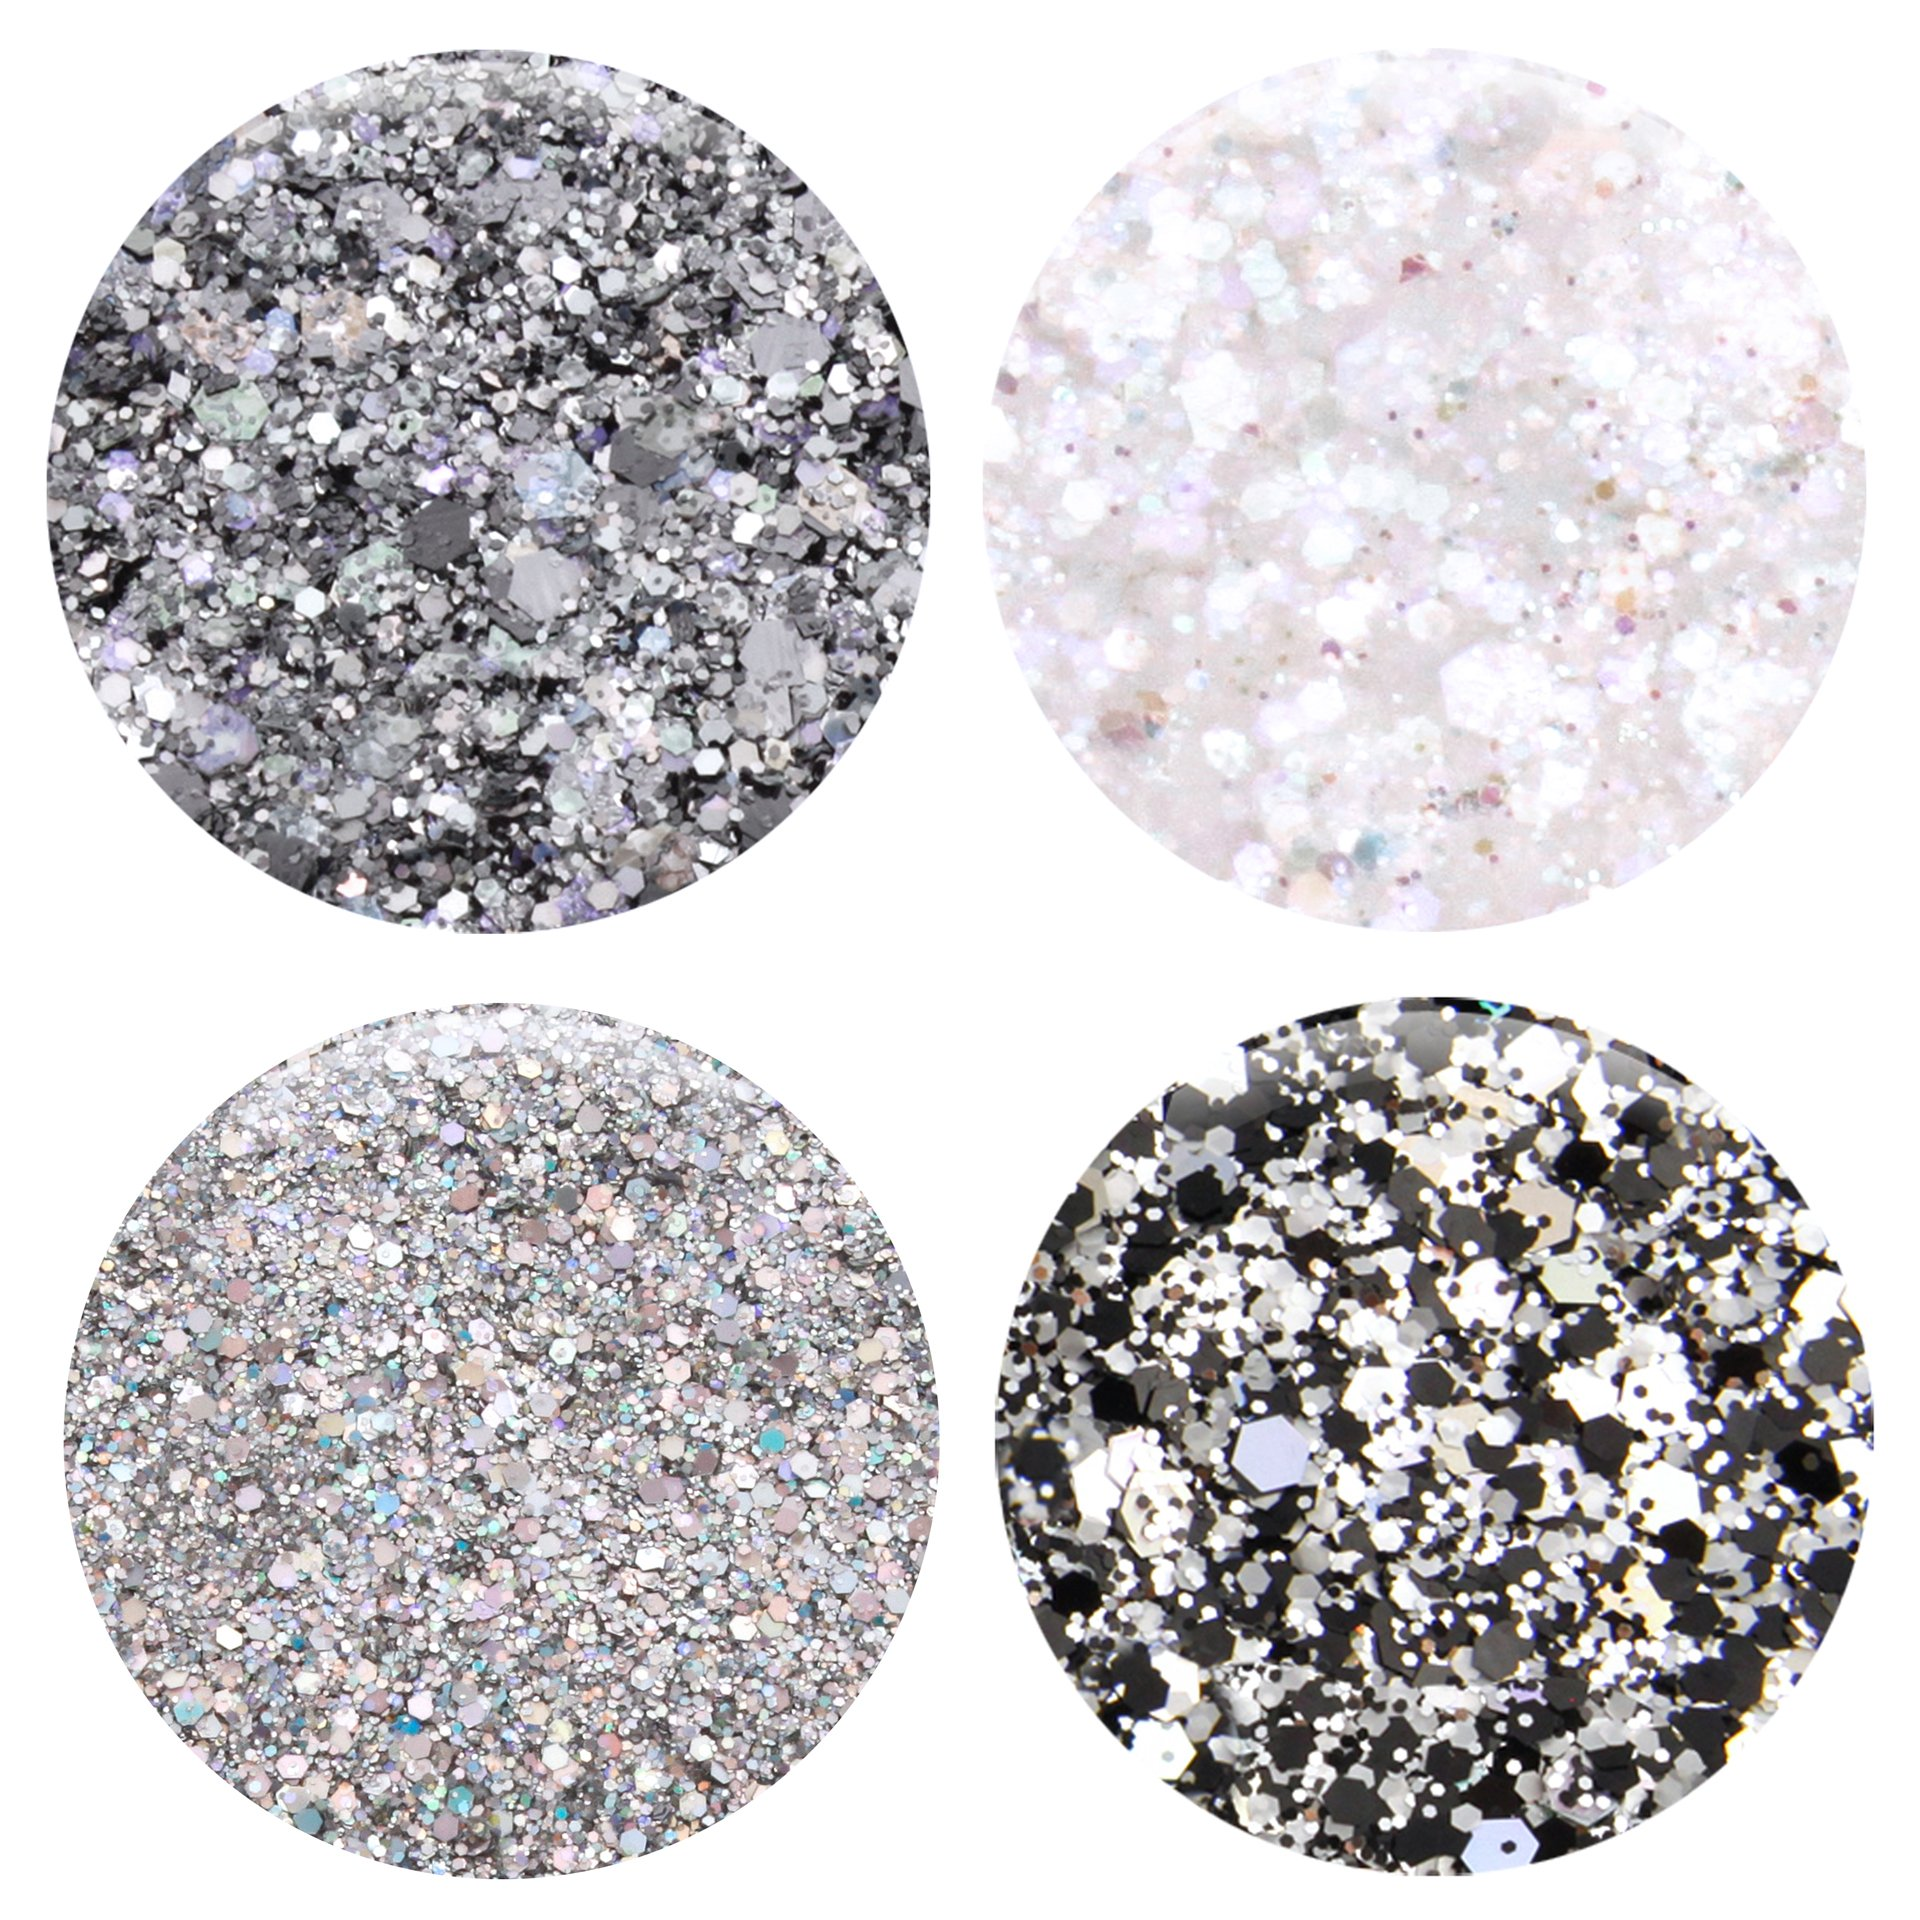 Mixed Glitter 20 Piece Kit - Includes Solvent Resistant Dust, Powder, Hexagon, Holographic, Matte Glitters - Great for Nail Art Polish, Gels, Art and Crafts, Paints & Acrylics Supplies - 1/4 OZ Jars by Glitties (Image #6)